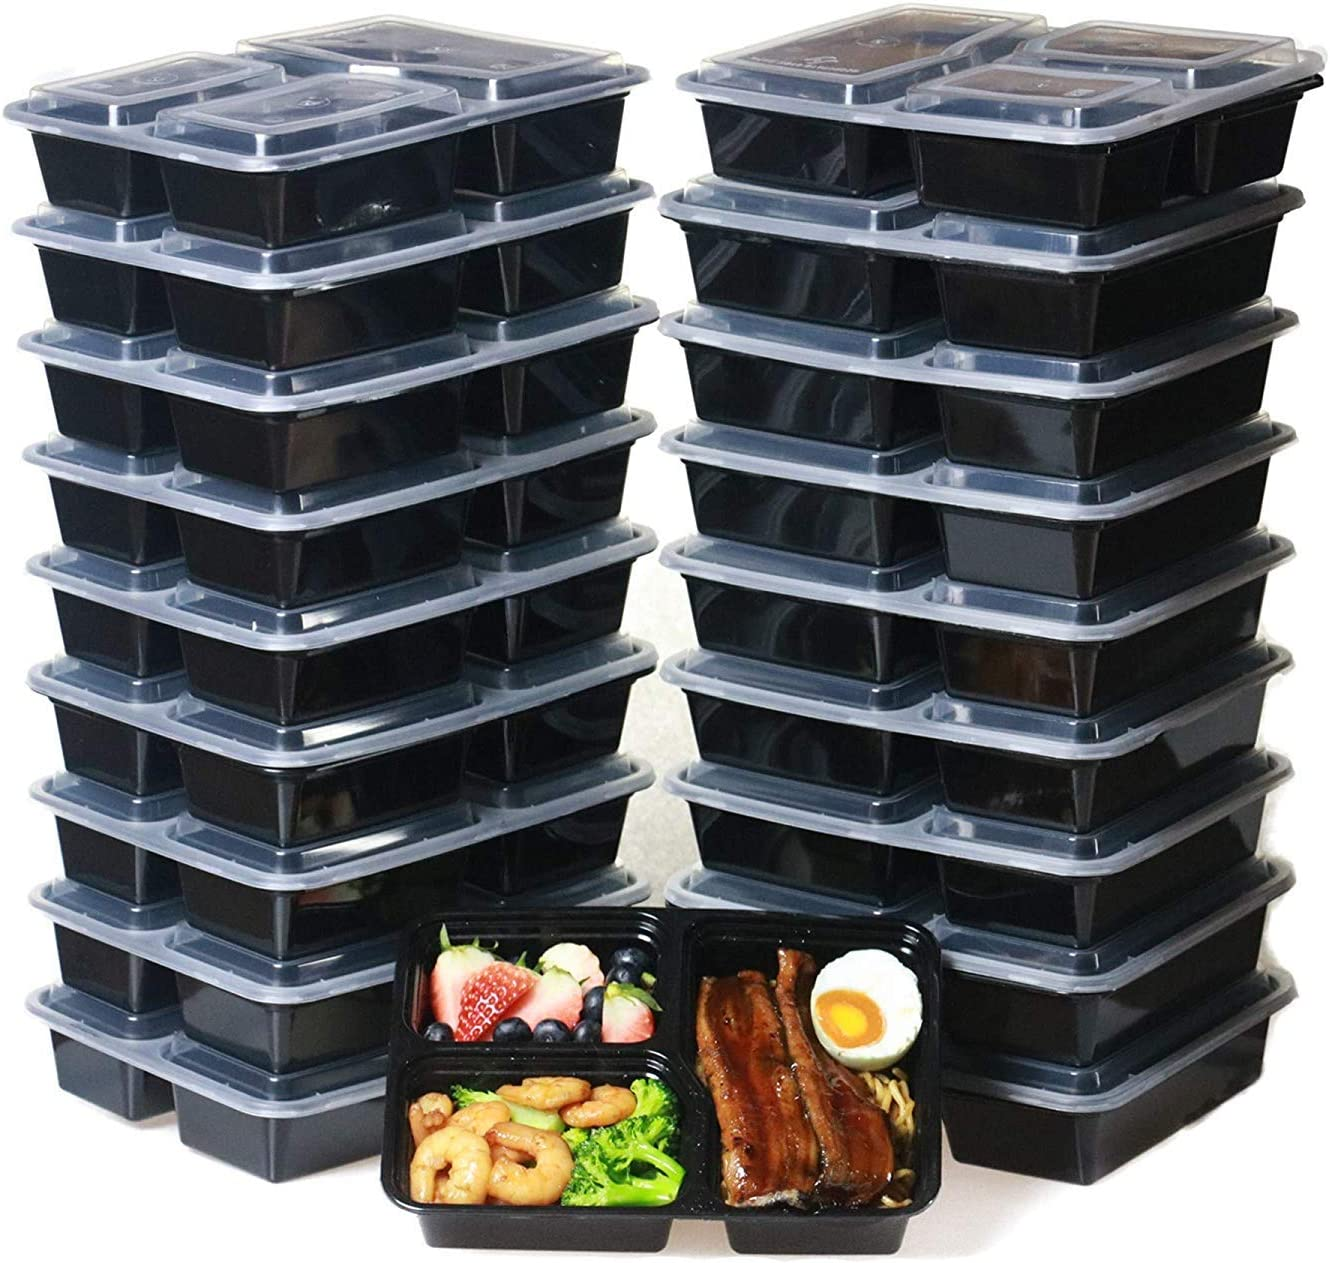 Meal Prep Containers 3 Compartment [20 Pack] Bento Lunch Box Food Containers BPA Free/Leak Proof/Microwave & Freezer Safe, (Black) (32 OZ)